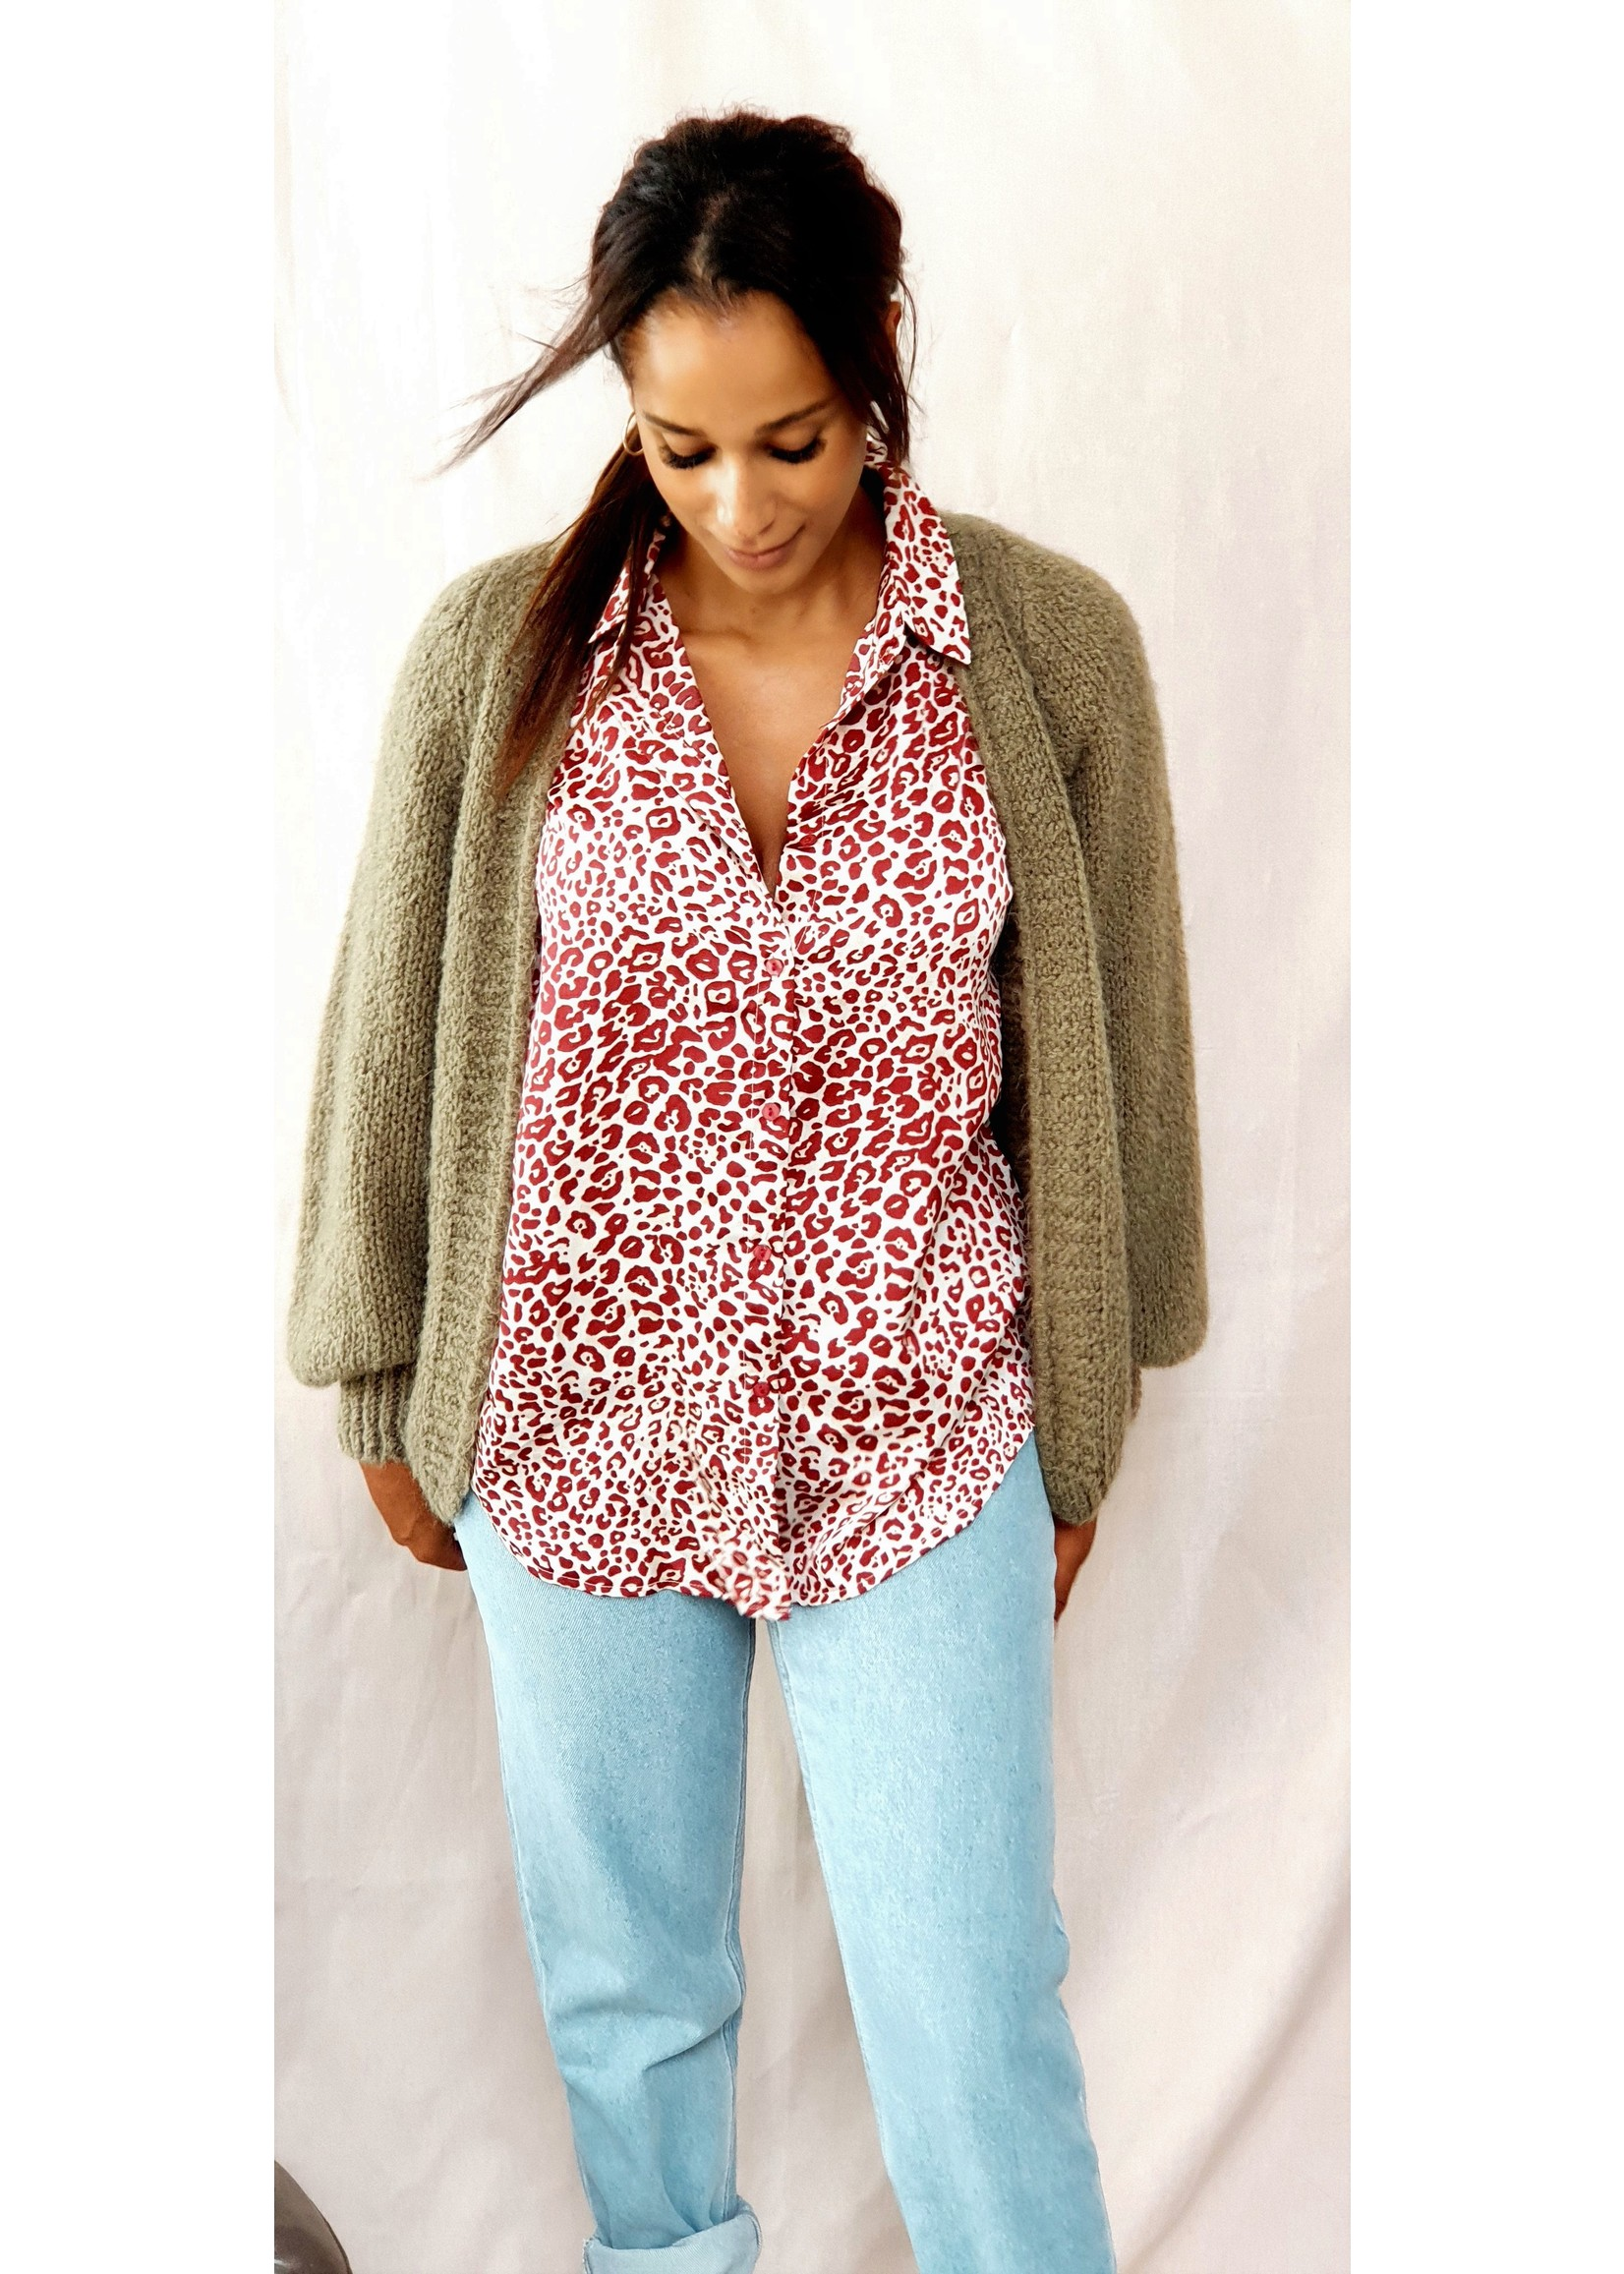 With A touch of leopard blouse